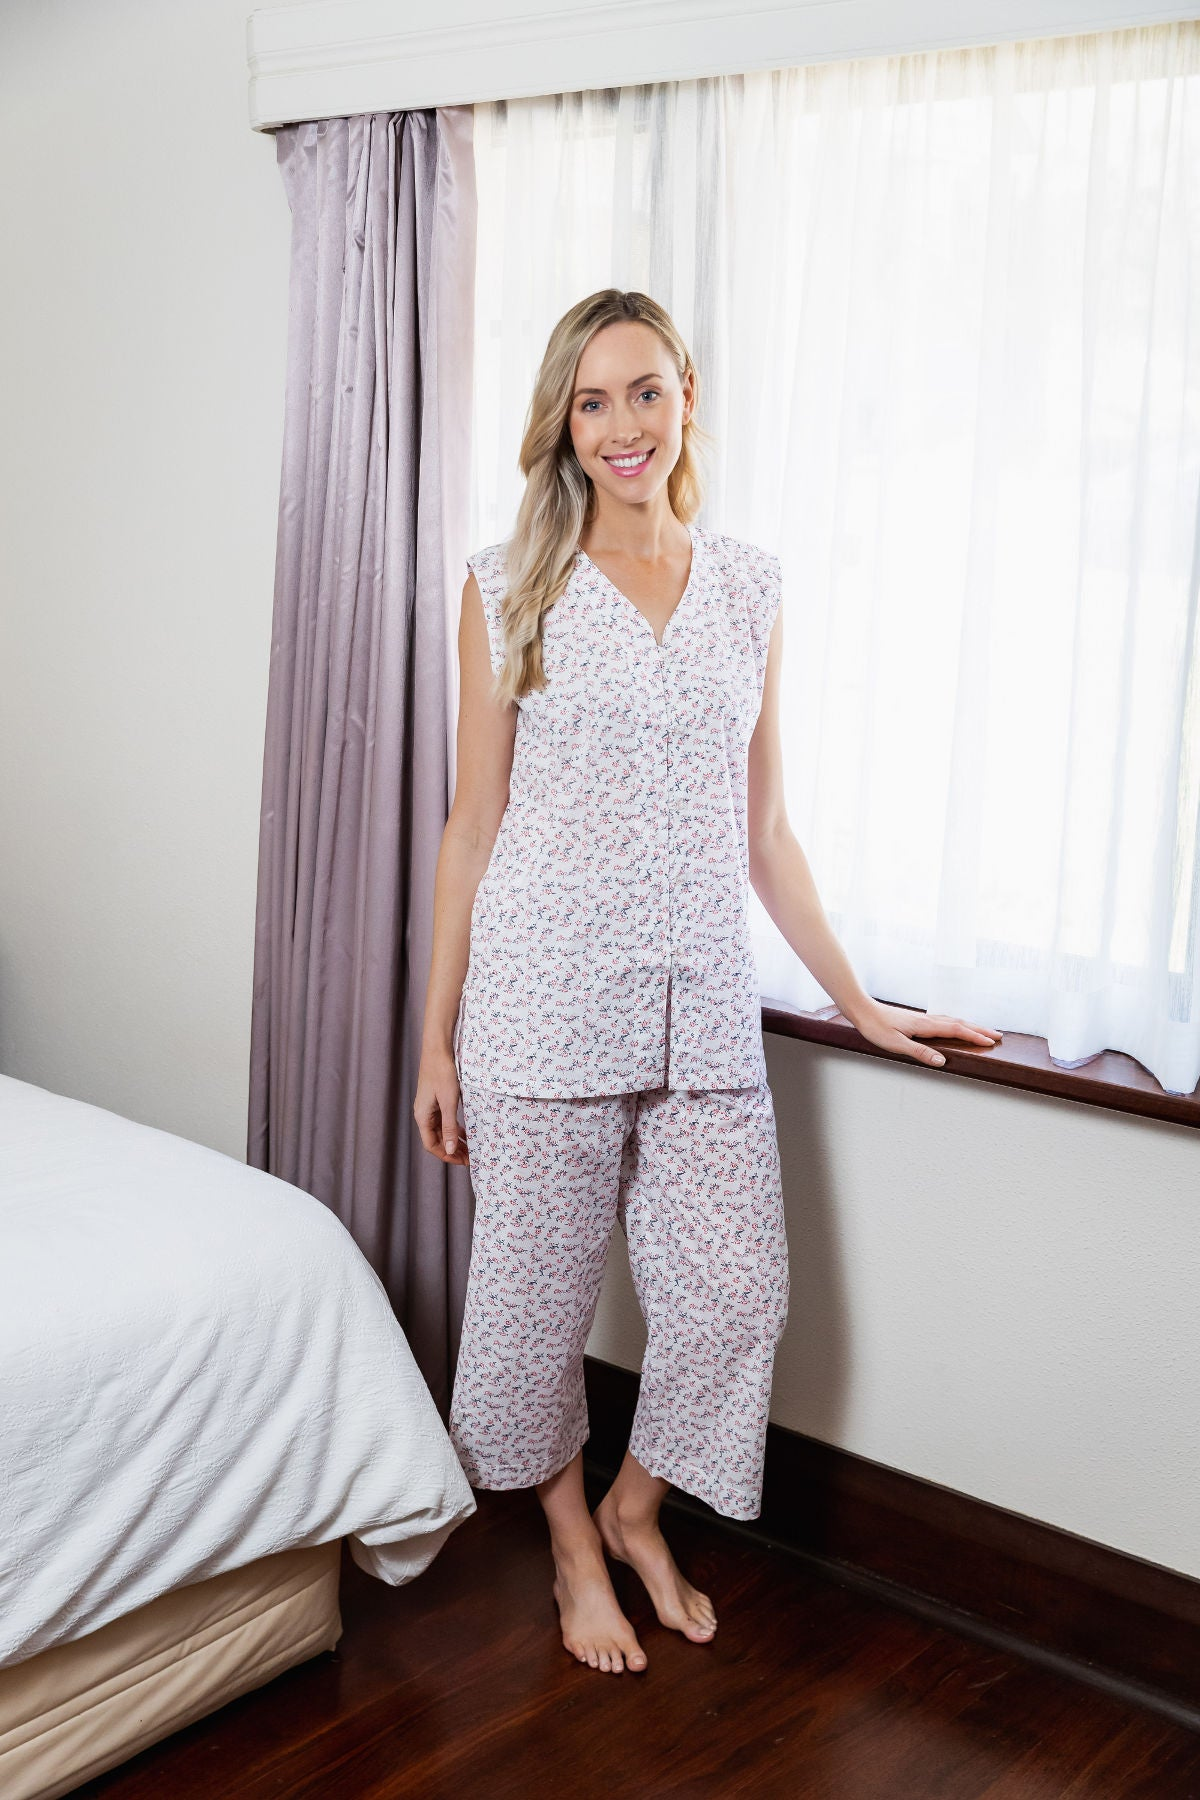 Our beautiful Gabrielle sleeveless pyjama set is made in the classic Clementine style with V button front opening top and elastic and draw string pants that are 3/4 in length.  Made from a soft cotton to keep you cool all summer long. Clementine designs are perfect for those relaxed moments at home.